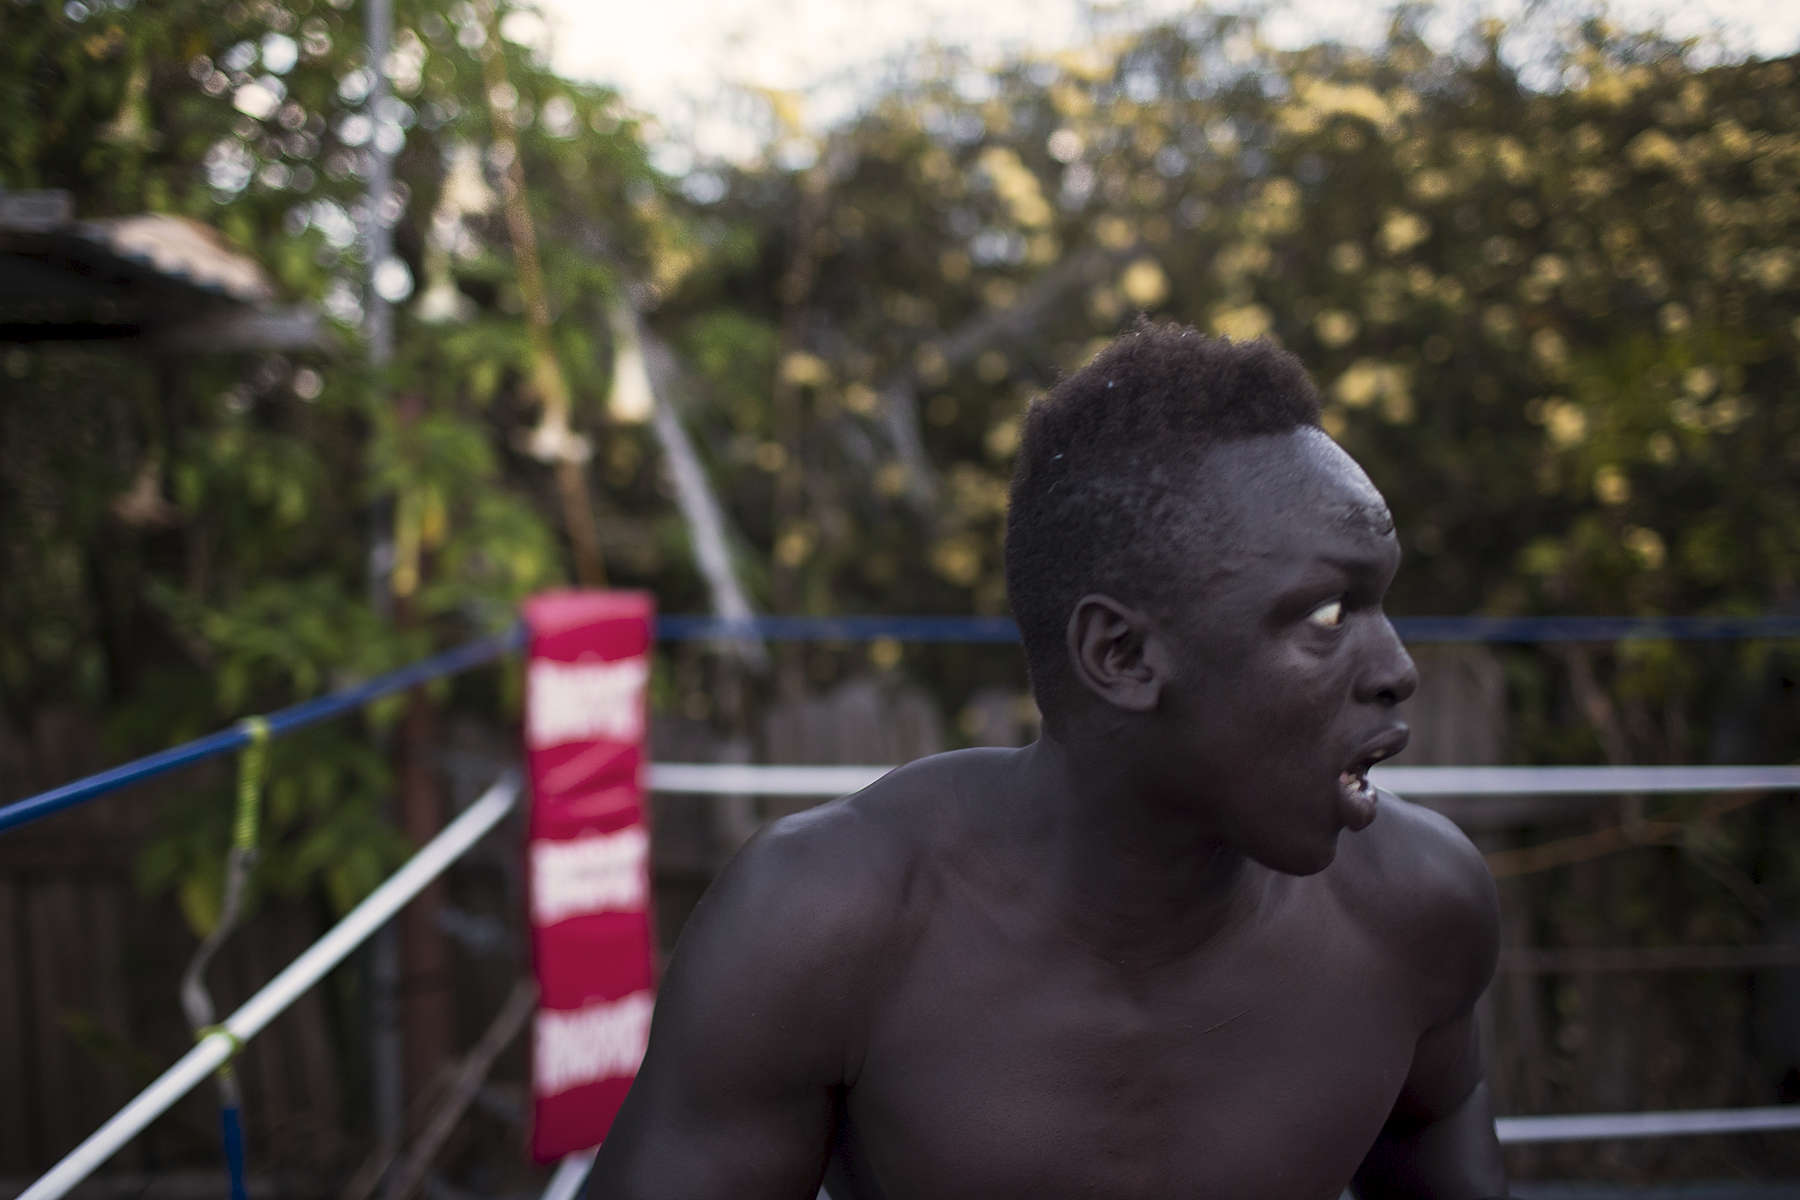 Manyang Dut skips during a training session inside the backyard of local boxer and trainer Daniel Ford (out of picture) in Toronto a lakeside suburb within the city of Lake Macquarie, between Newcastle and Sydney. Manyang, 19 years old, has won a number of national and state amateur boxing belts in recent years and his trainers Shane Wells (left) and Ford think he may be ready to have a shot at professional boxing. Manyang arrived in Australia at 11 years of age in 2005 with his Mother two brothers and three sisters.